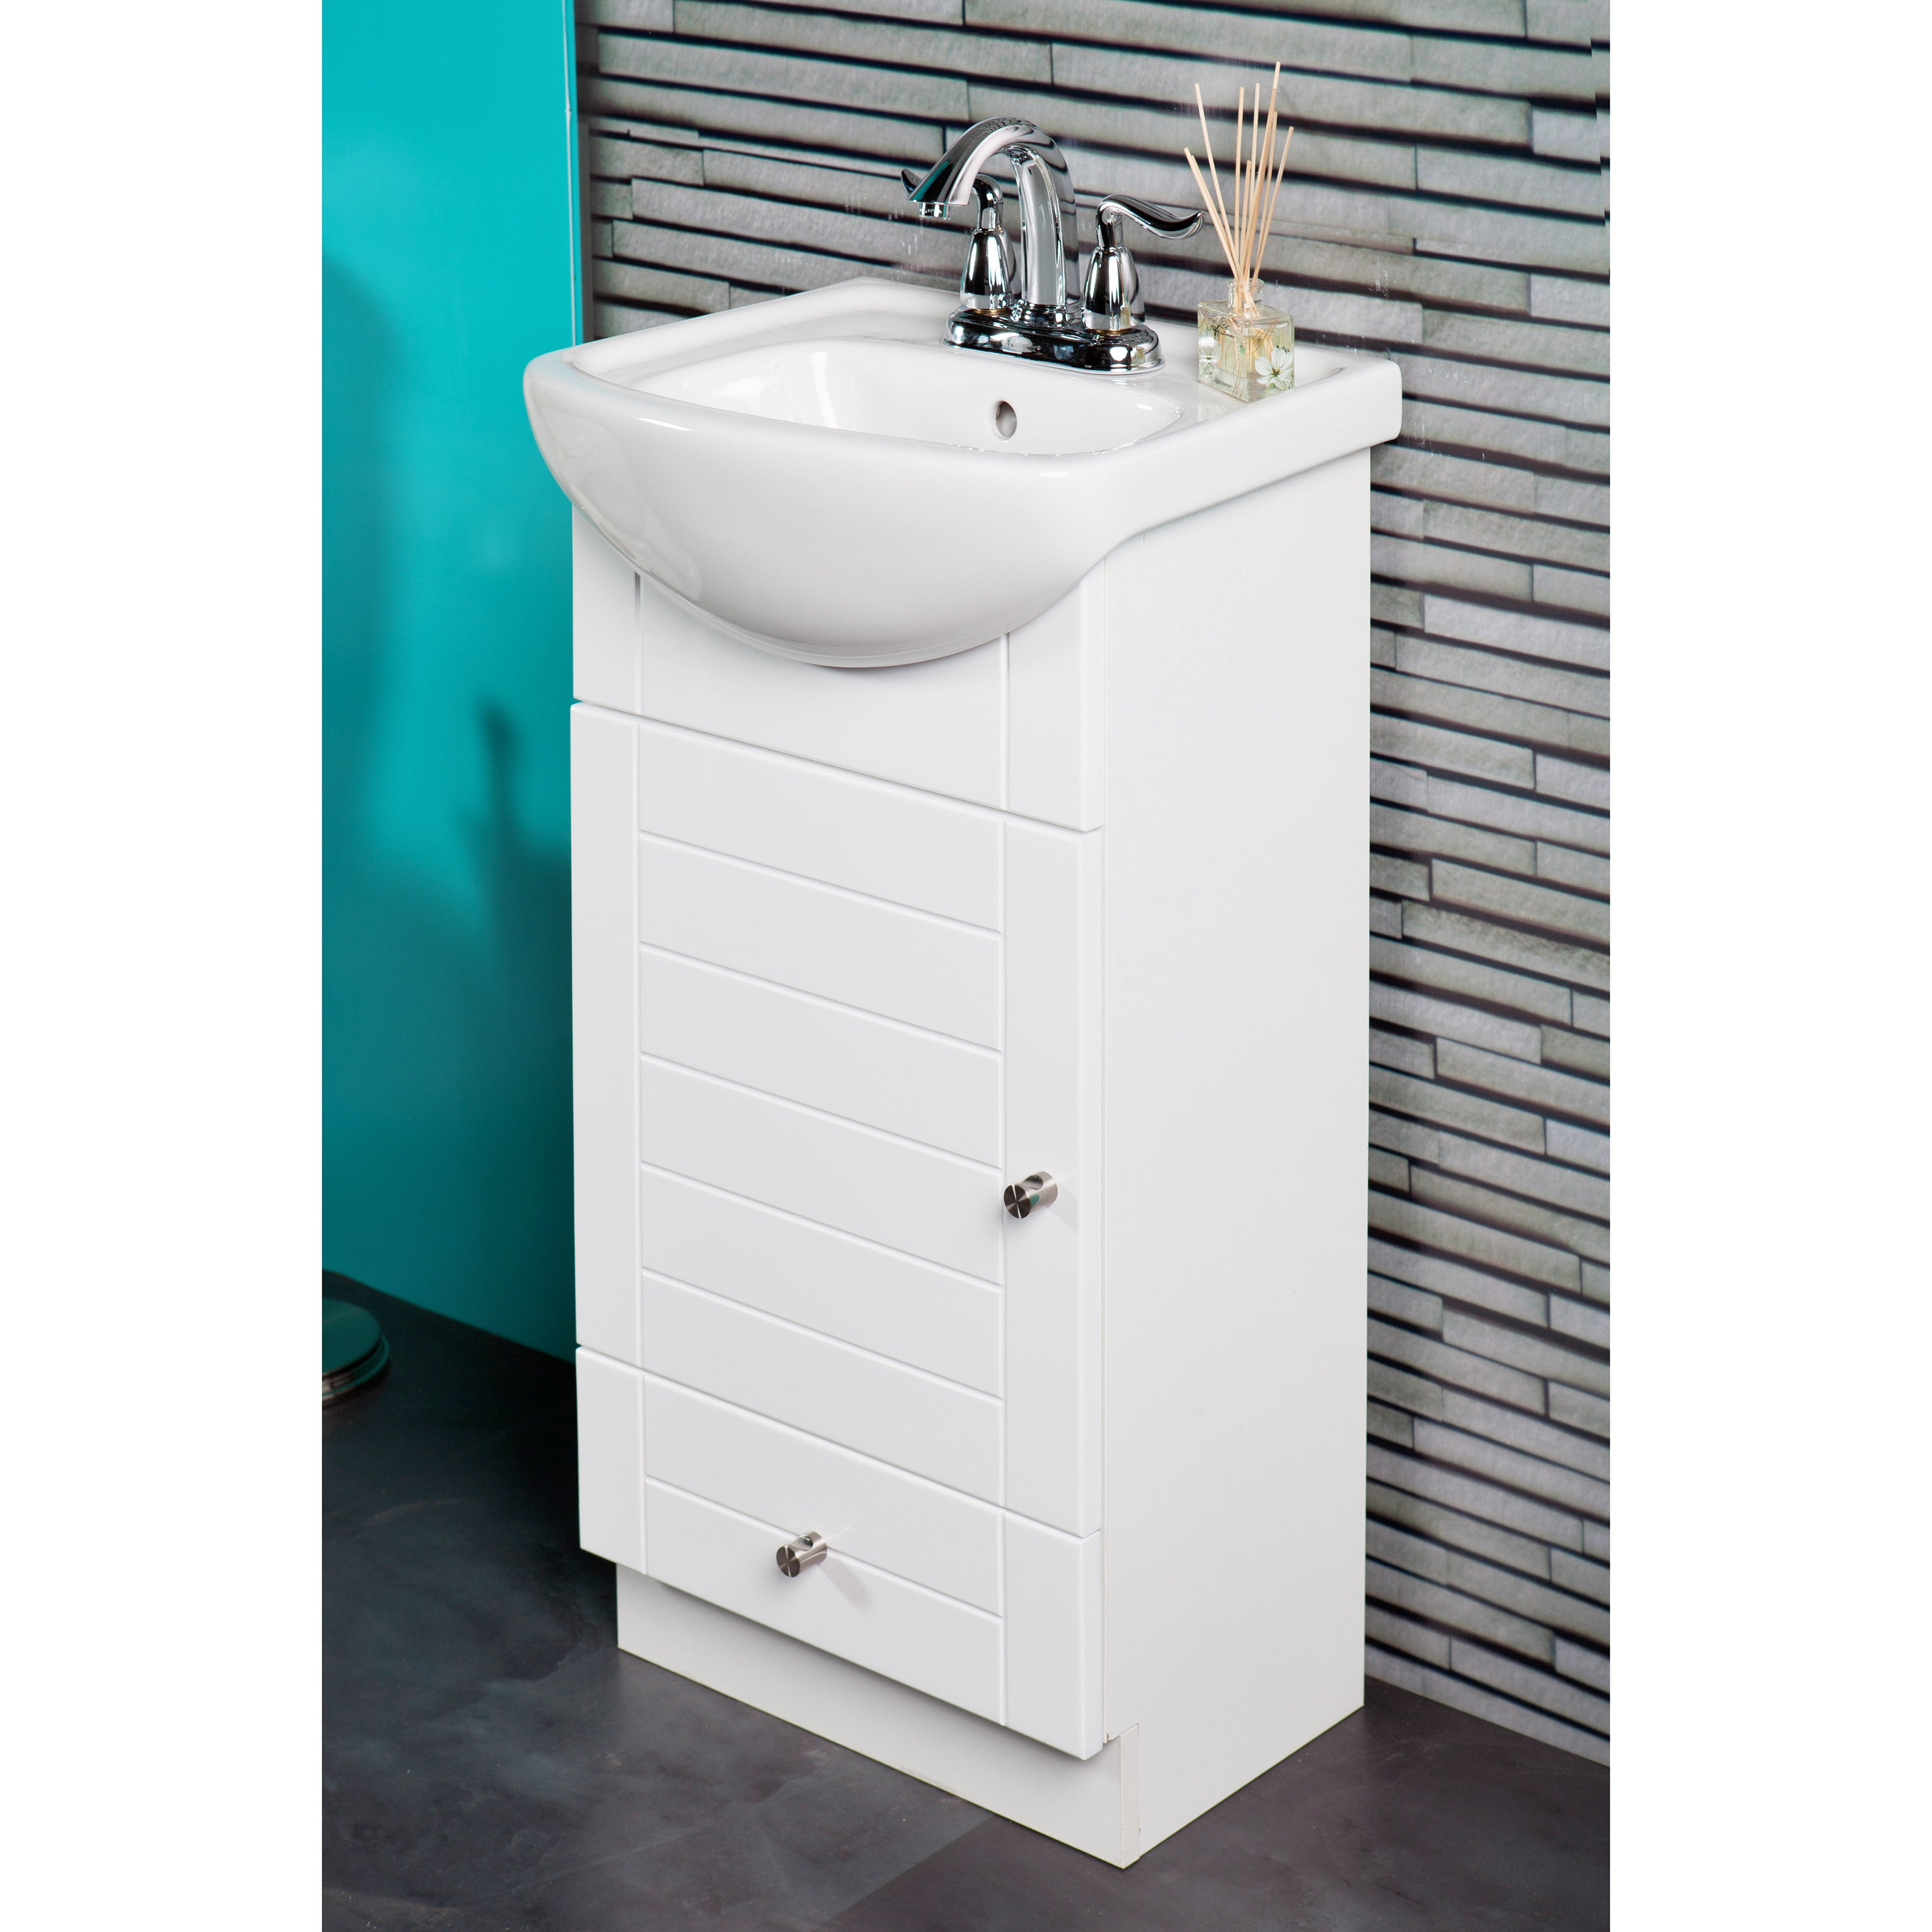 fine fixtures petite 16-inch vanity with vitreous china sink top